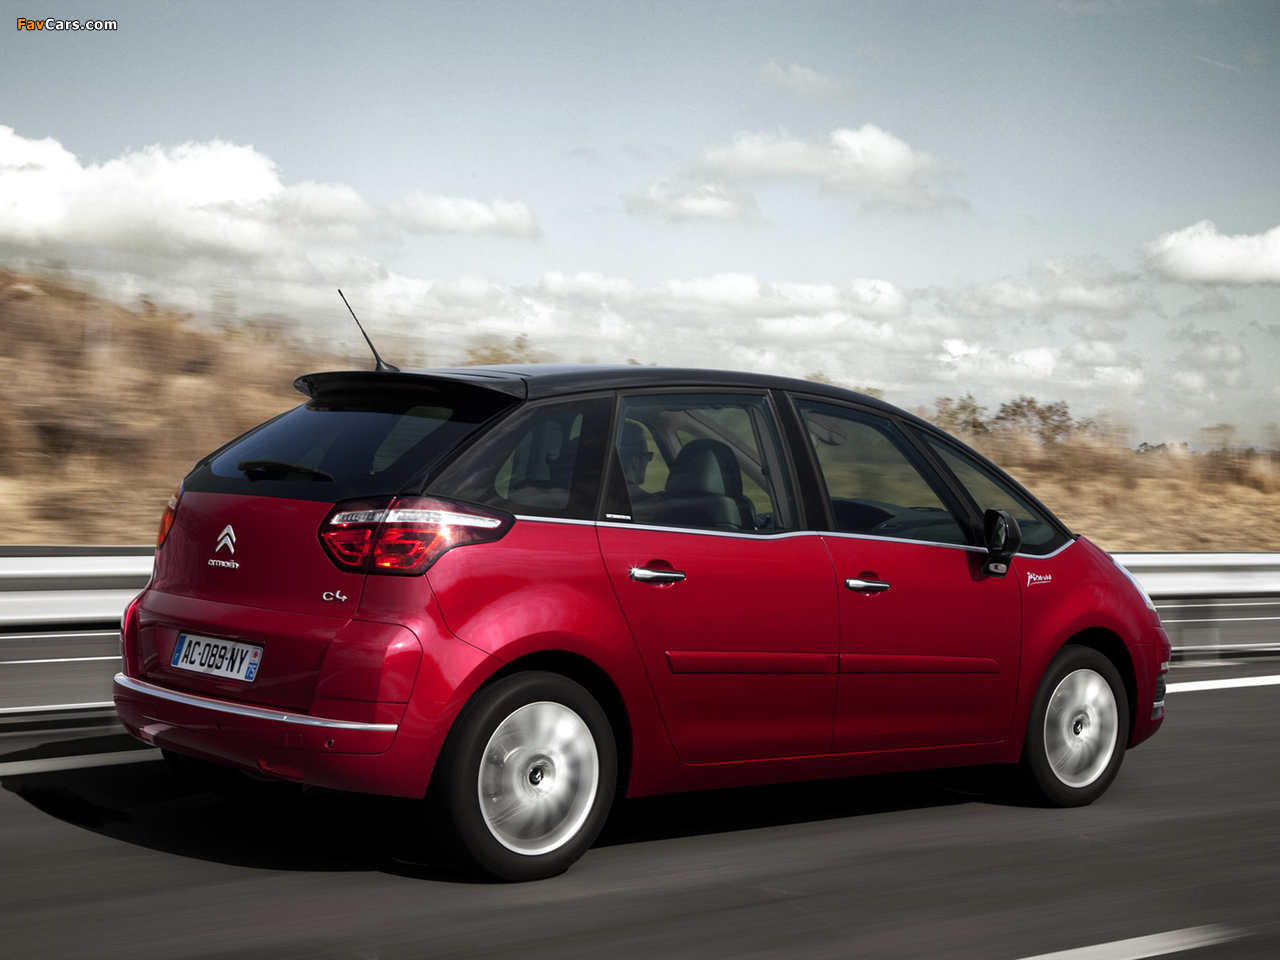 Citroën C4 Picasso 2010 wallpapers (1280 x 960)